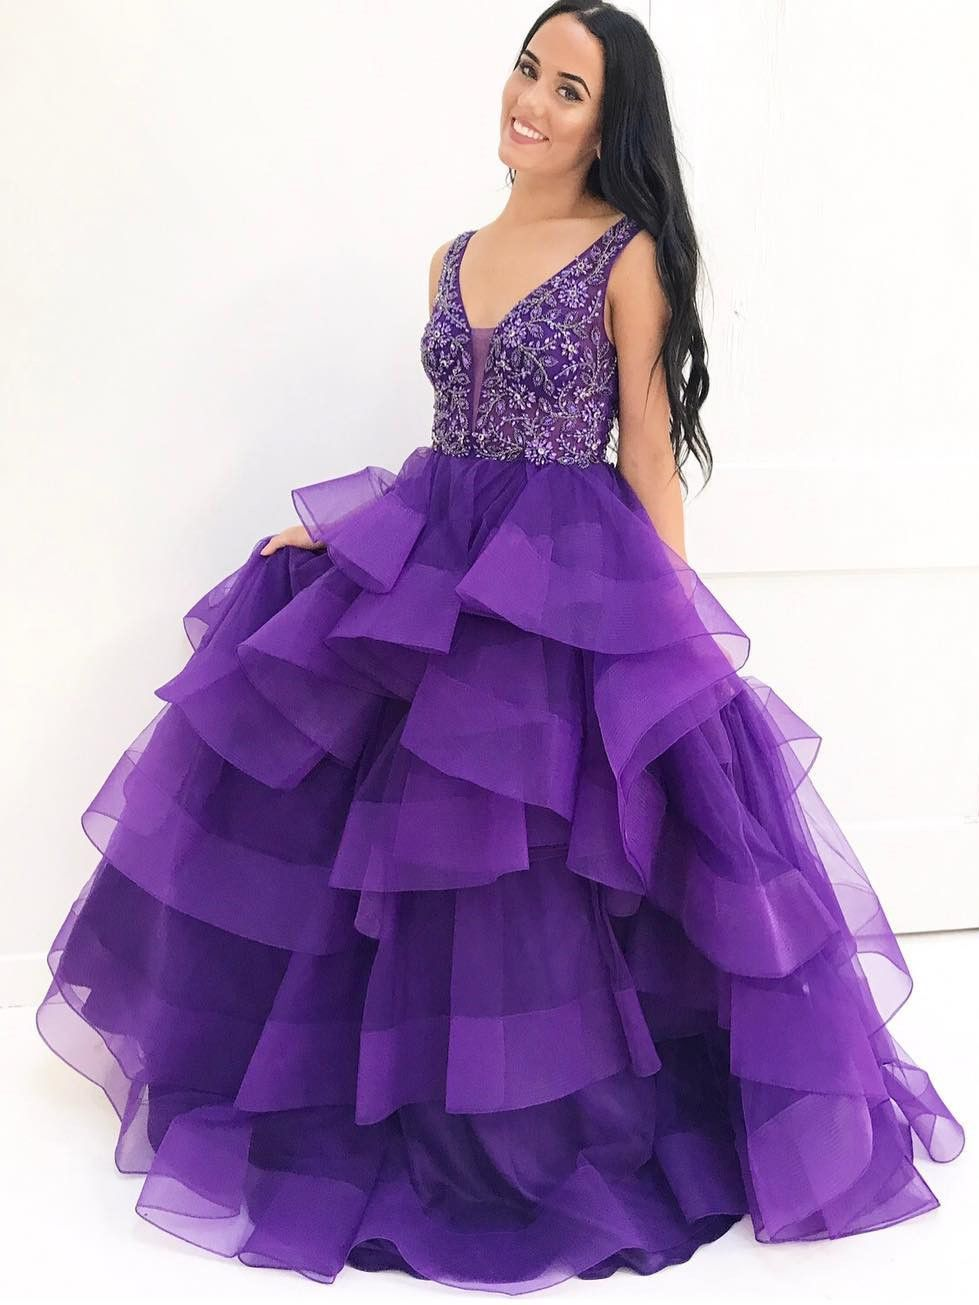 Pin by nina kim on ball gown pinterest ball gowns gowns and